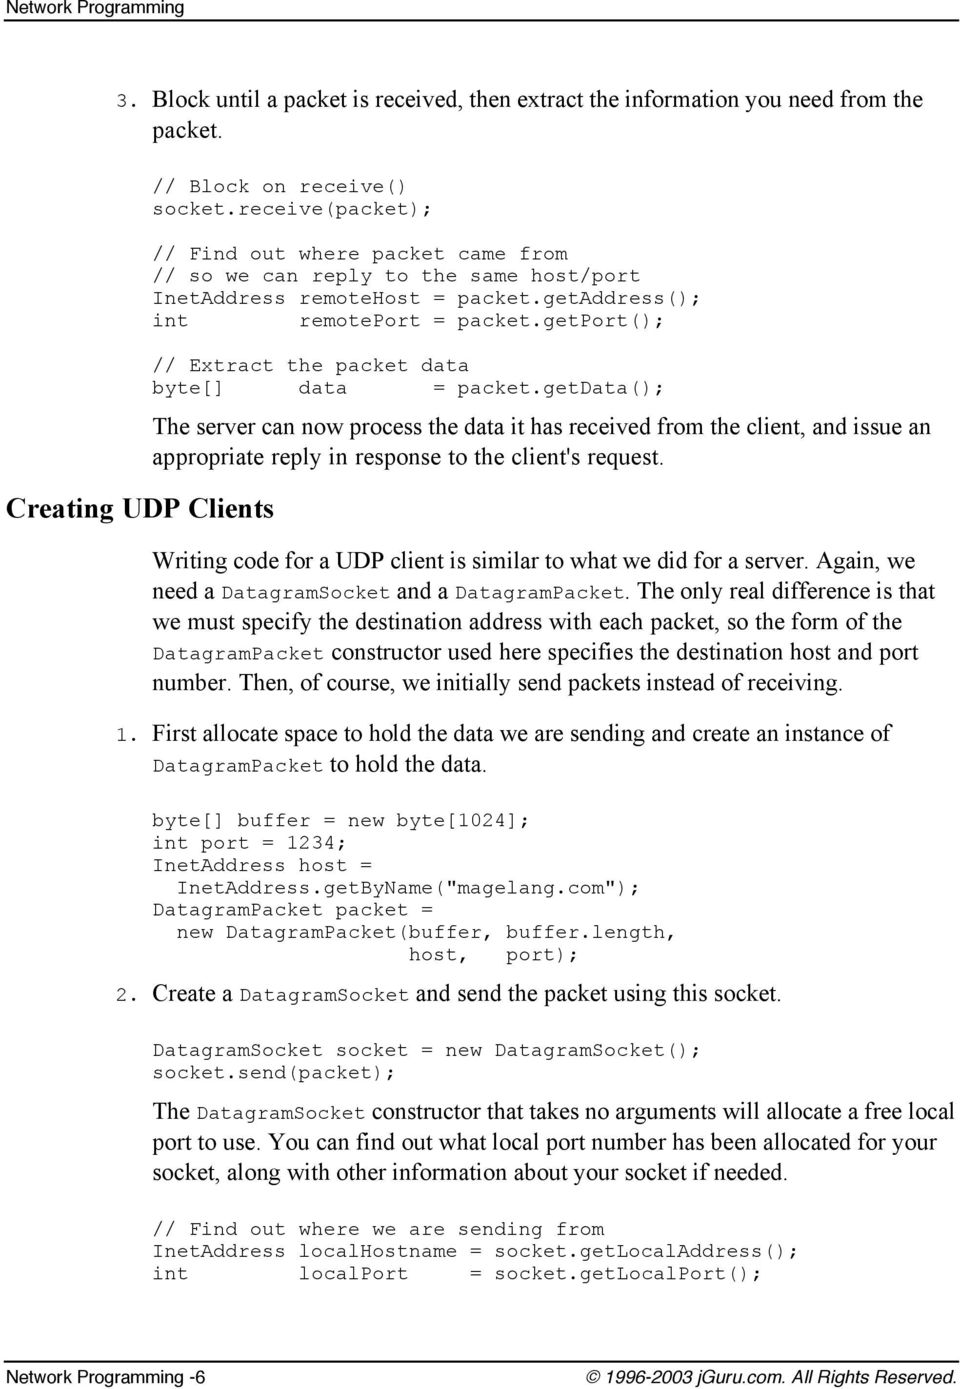 The difference between TCP/IP, UDP/IP and Multicast sockets  How